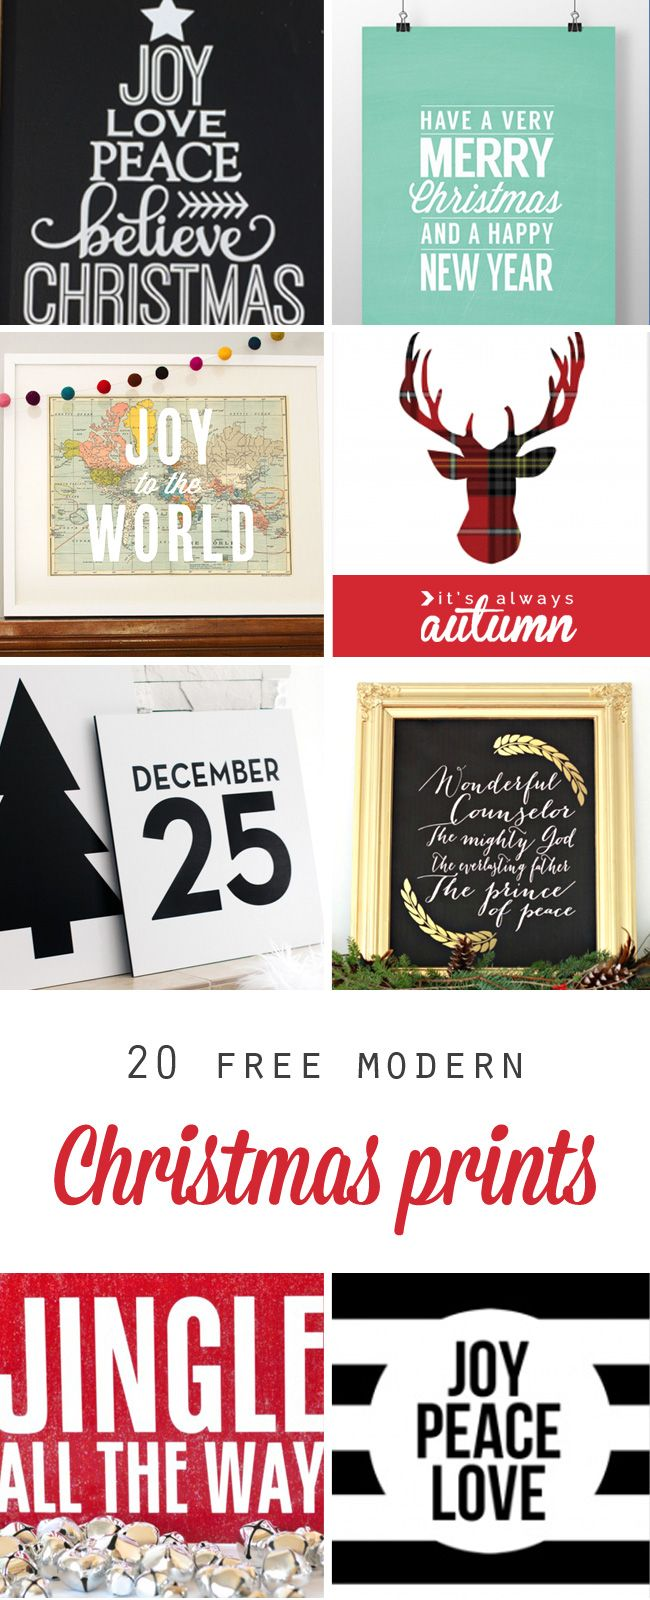 No christmas decorations until after thanksgiving - 20 Beautiful Modern Free Christmas Prints